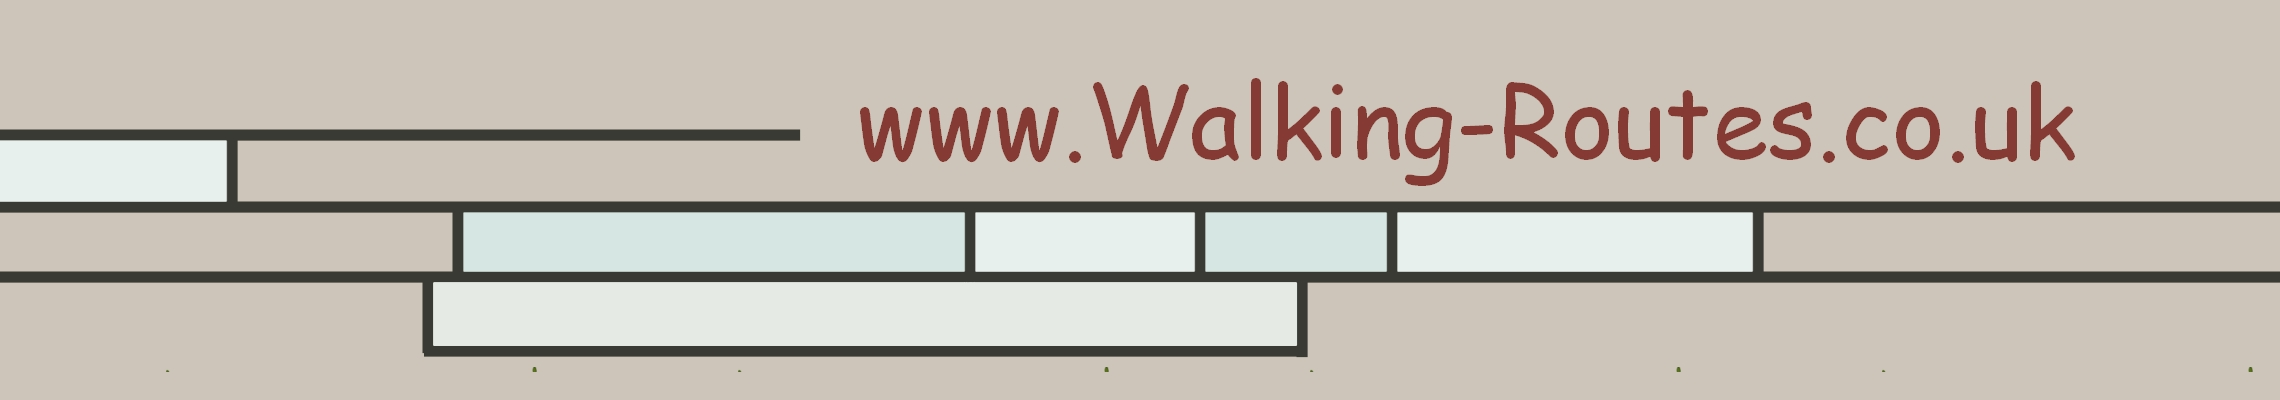 UK Walking Routes banner